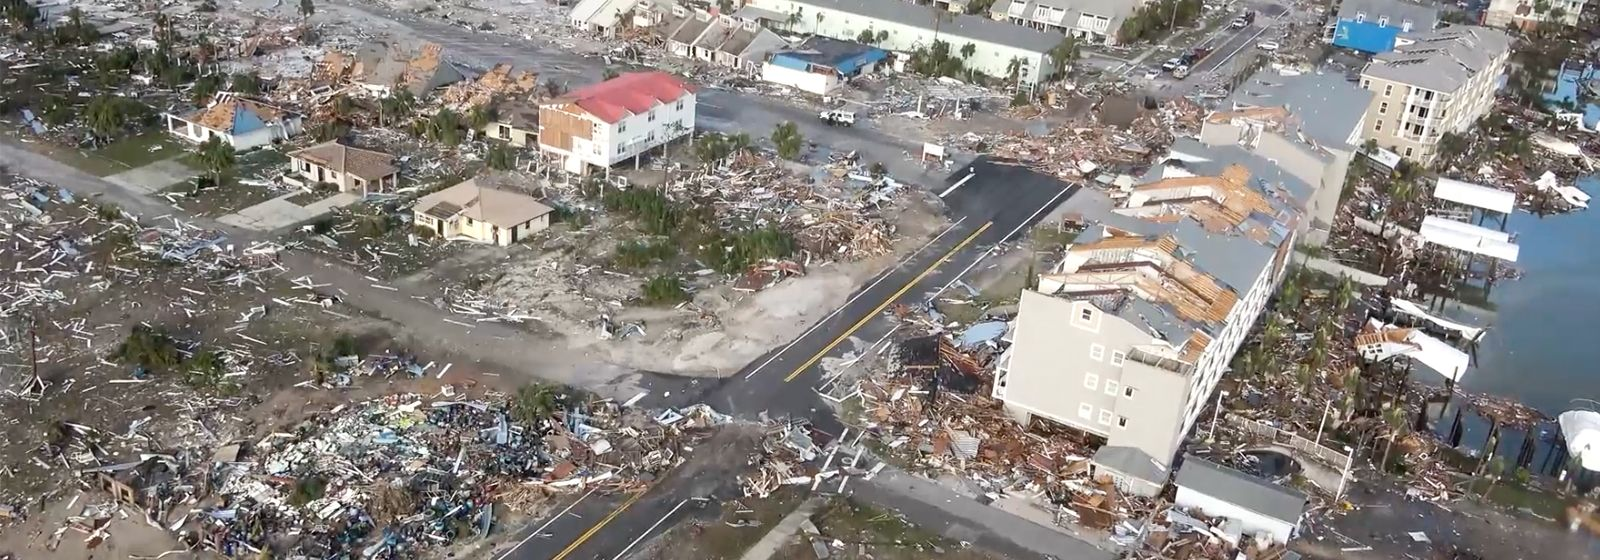 Hurricane Michael damage so extensive, company inspecting with boats and drones